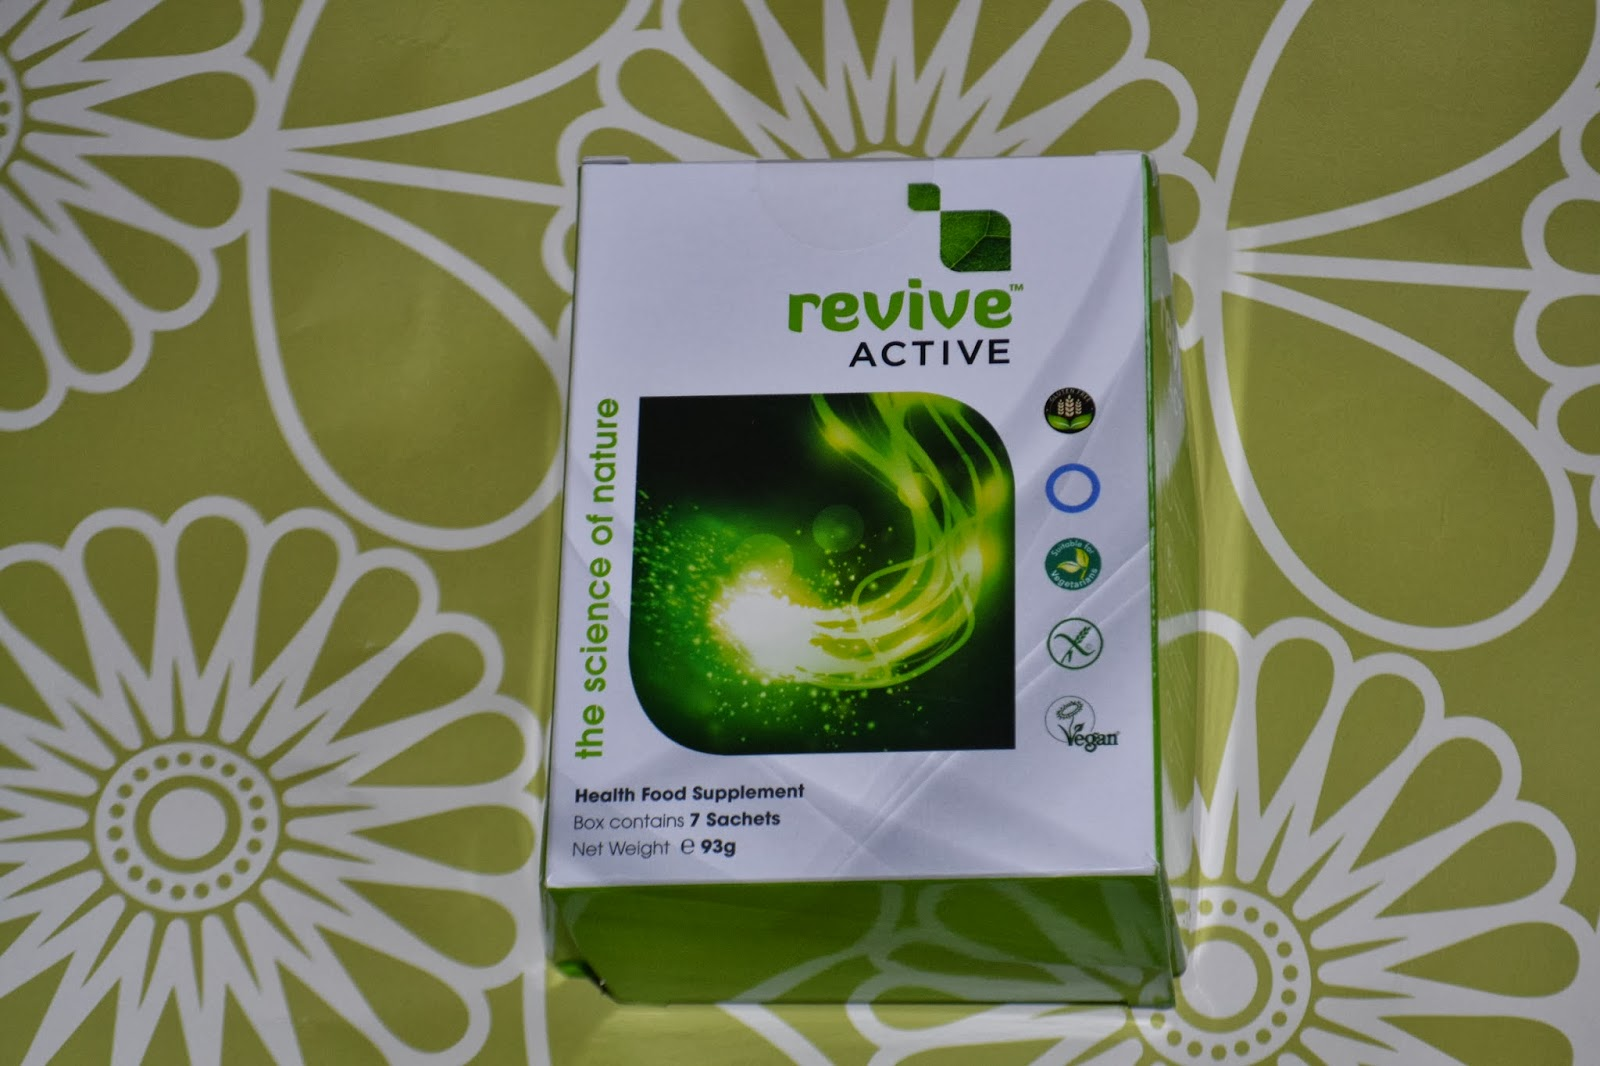 Revive Active review